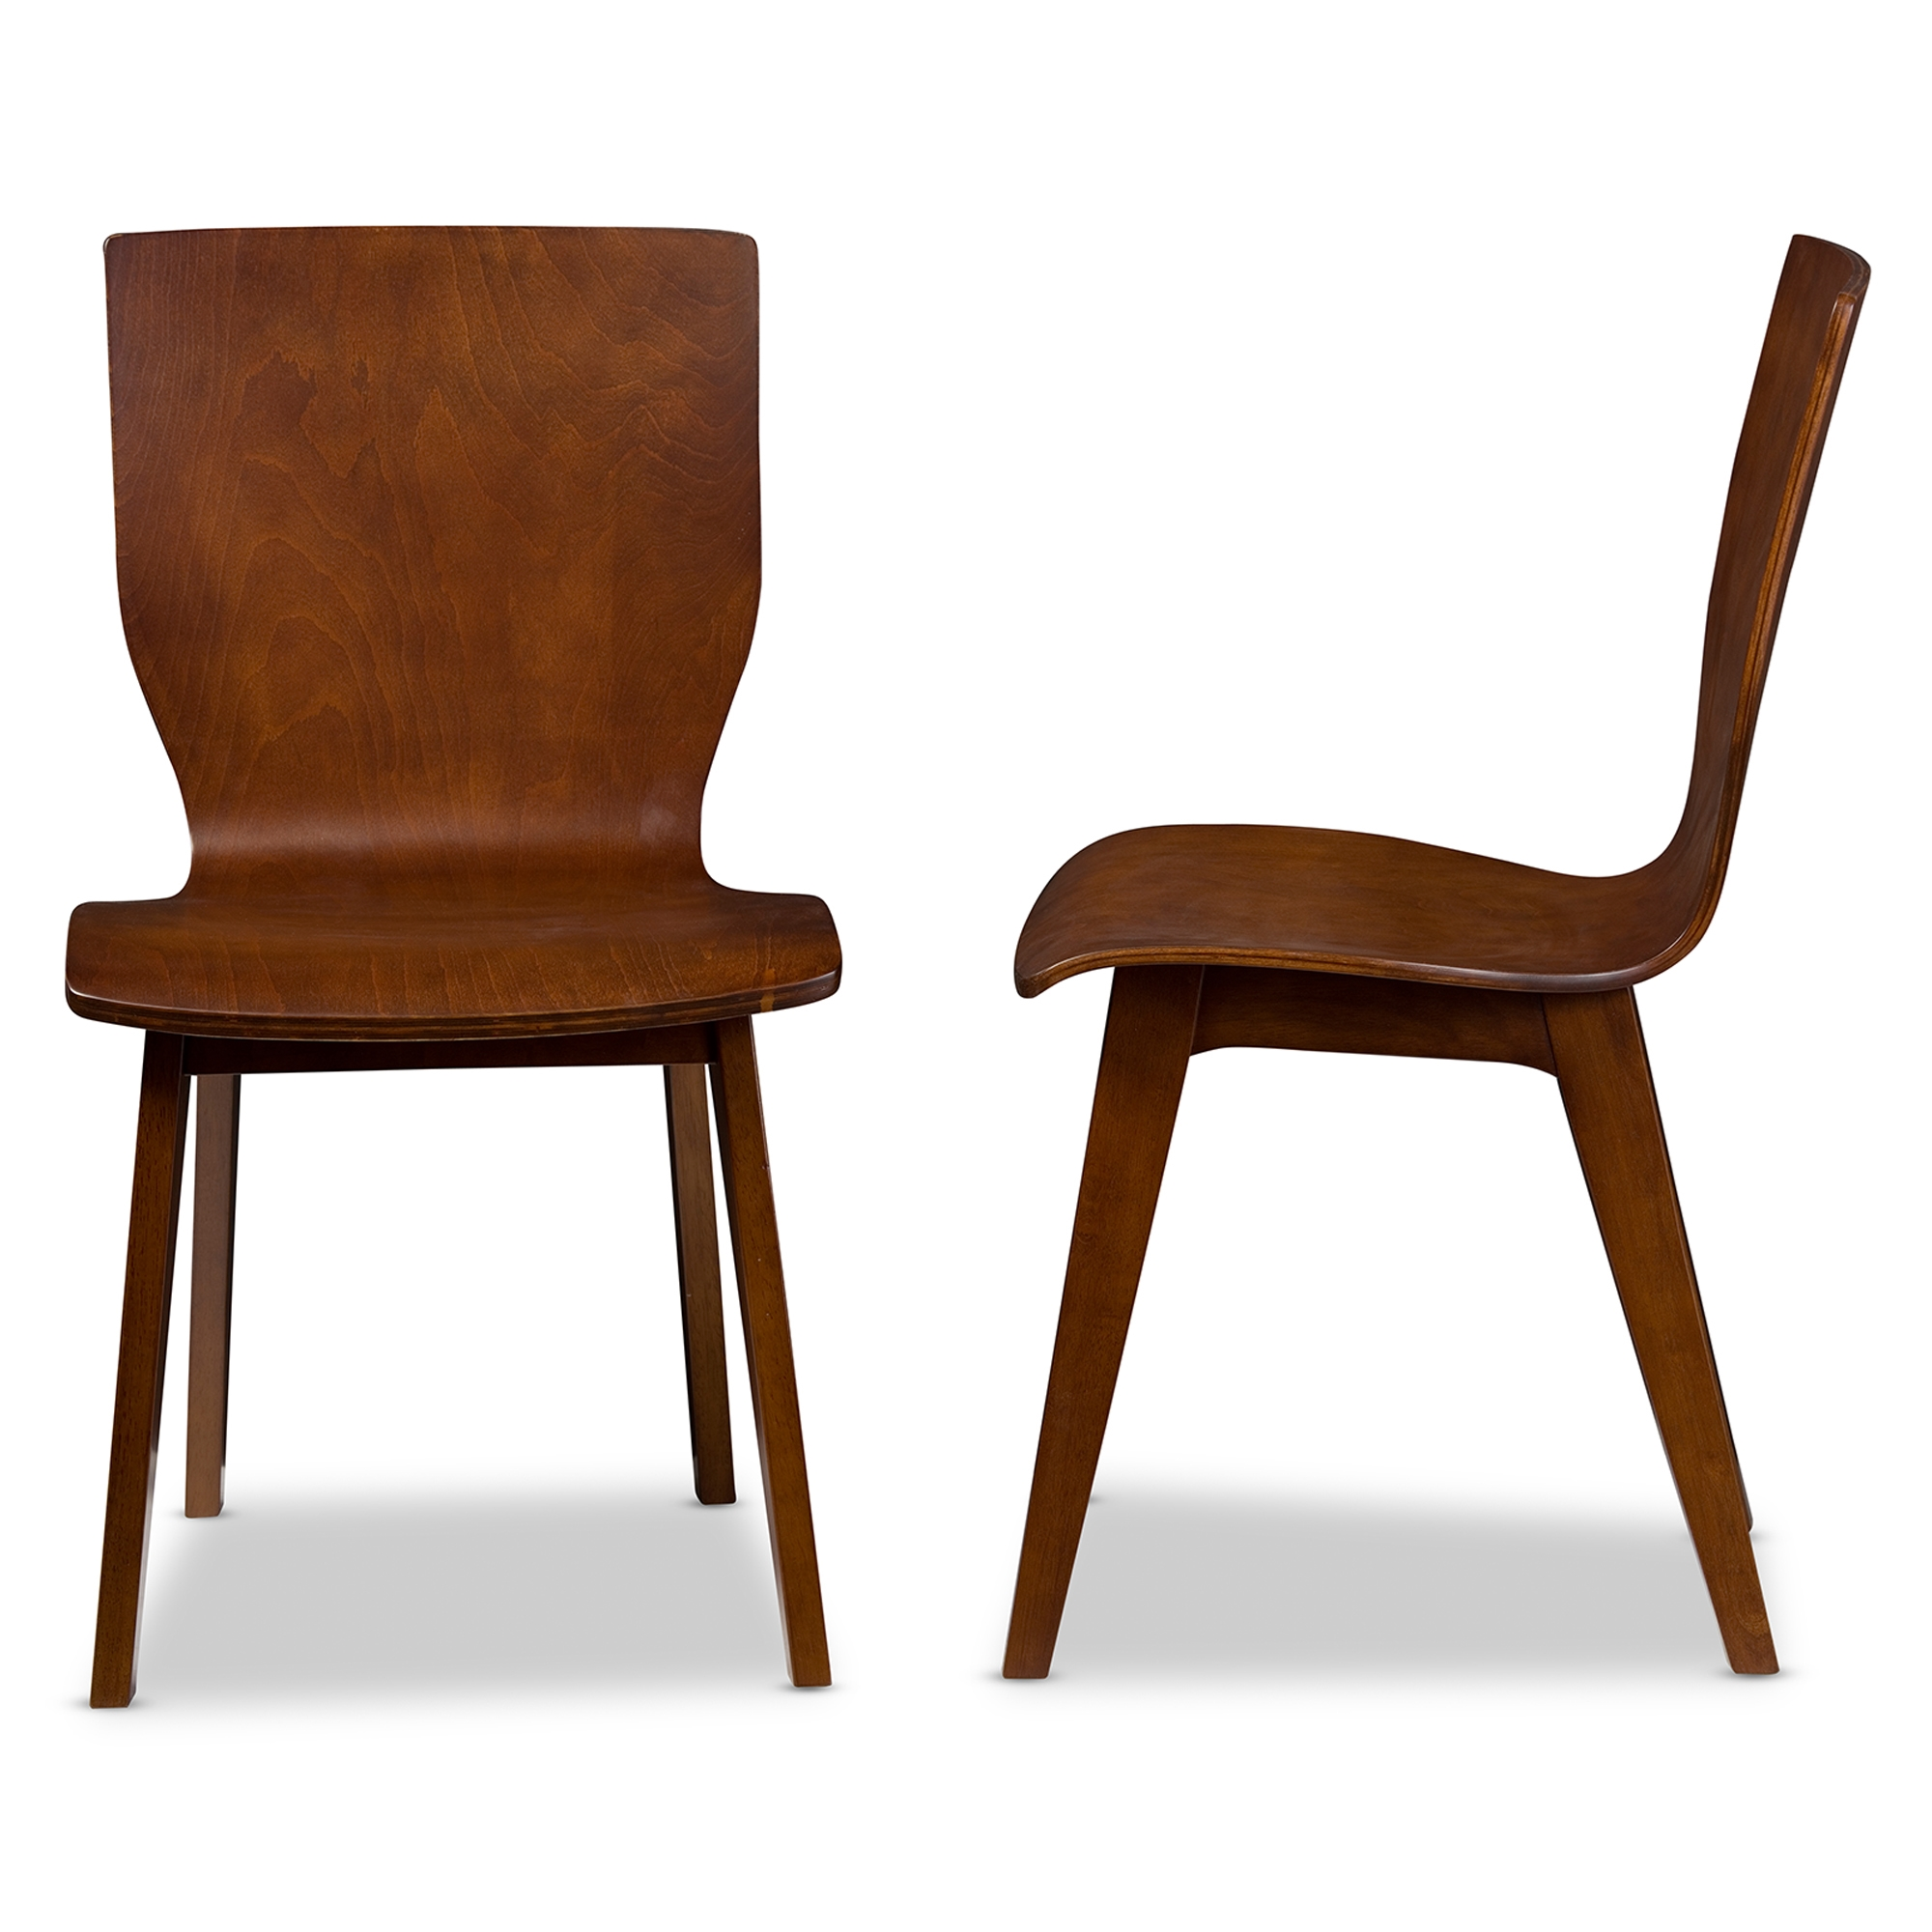 Baxton Studio Elsa Mid Century Modern Scandinavian Style Dark Walnut Bent  Wood Dining Chair ...